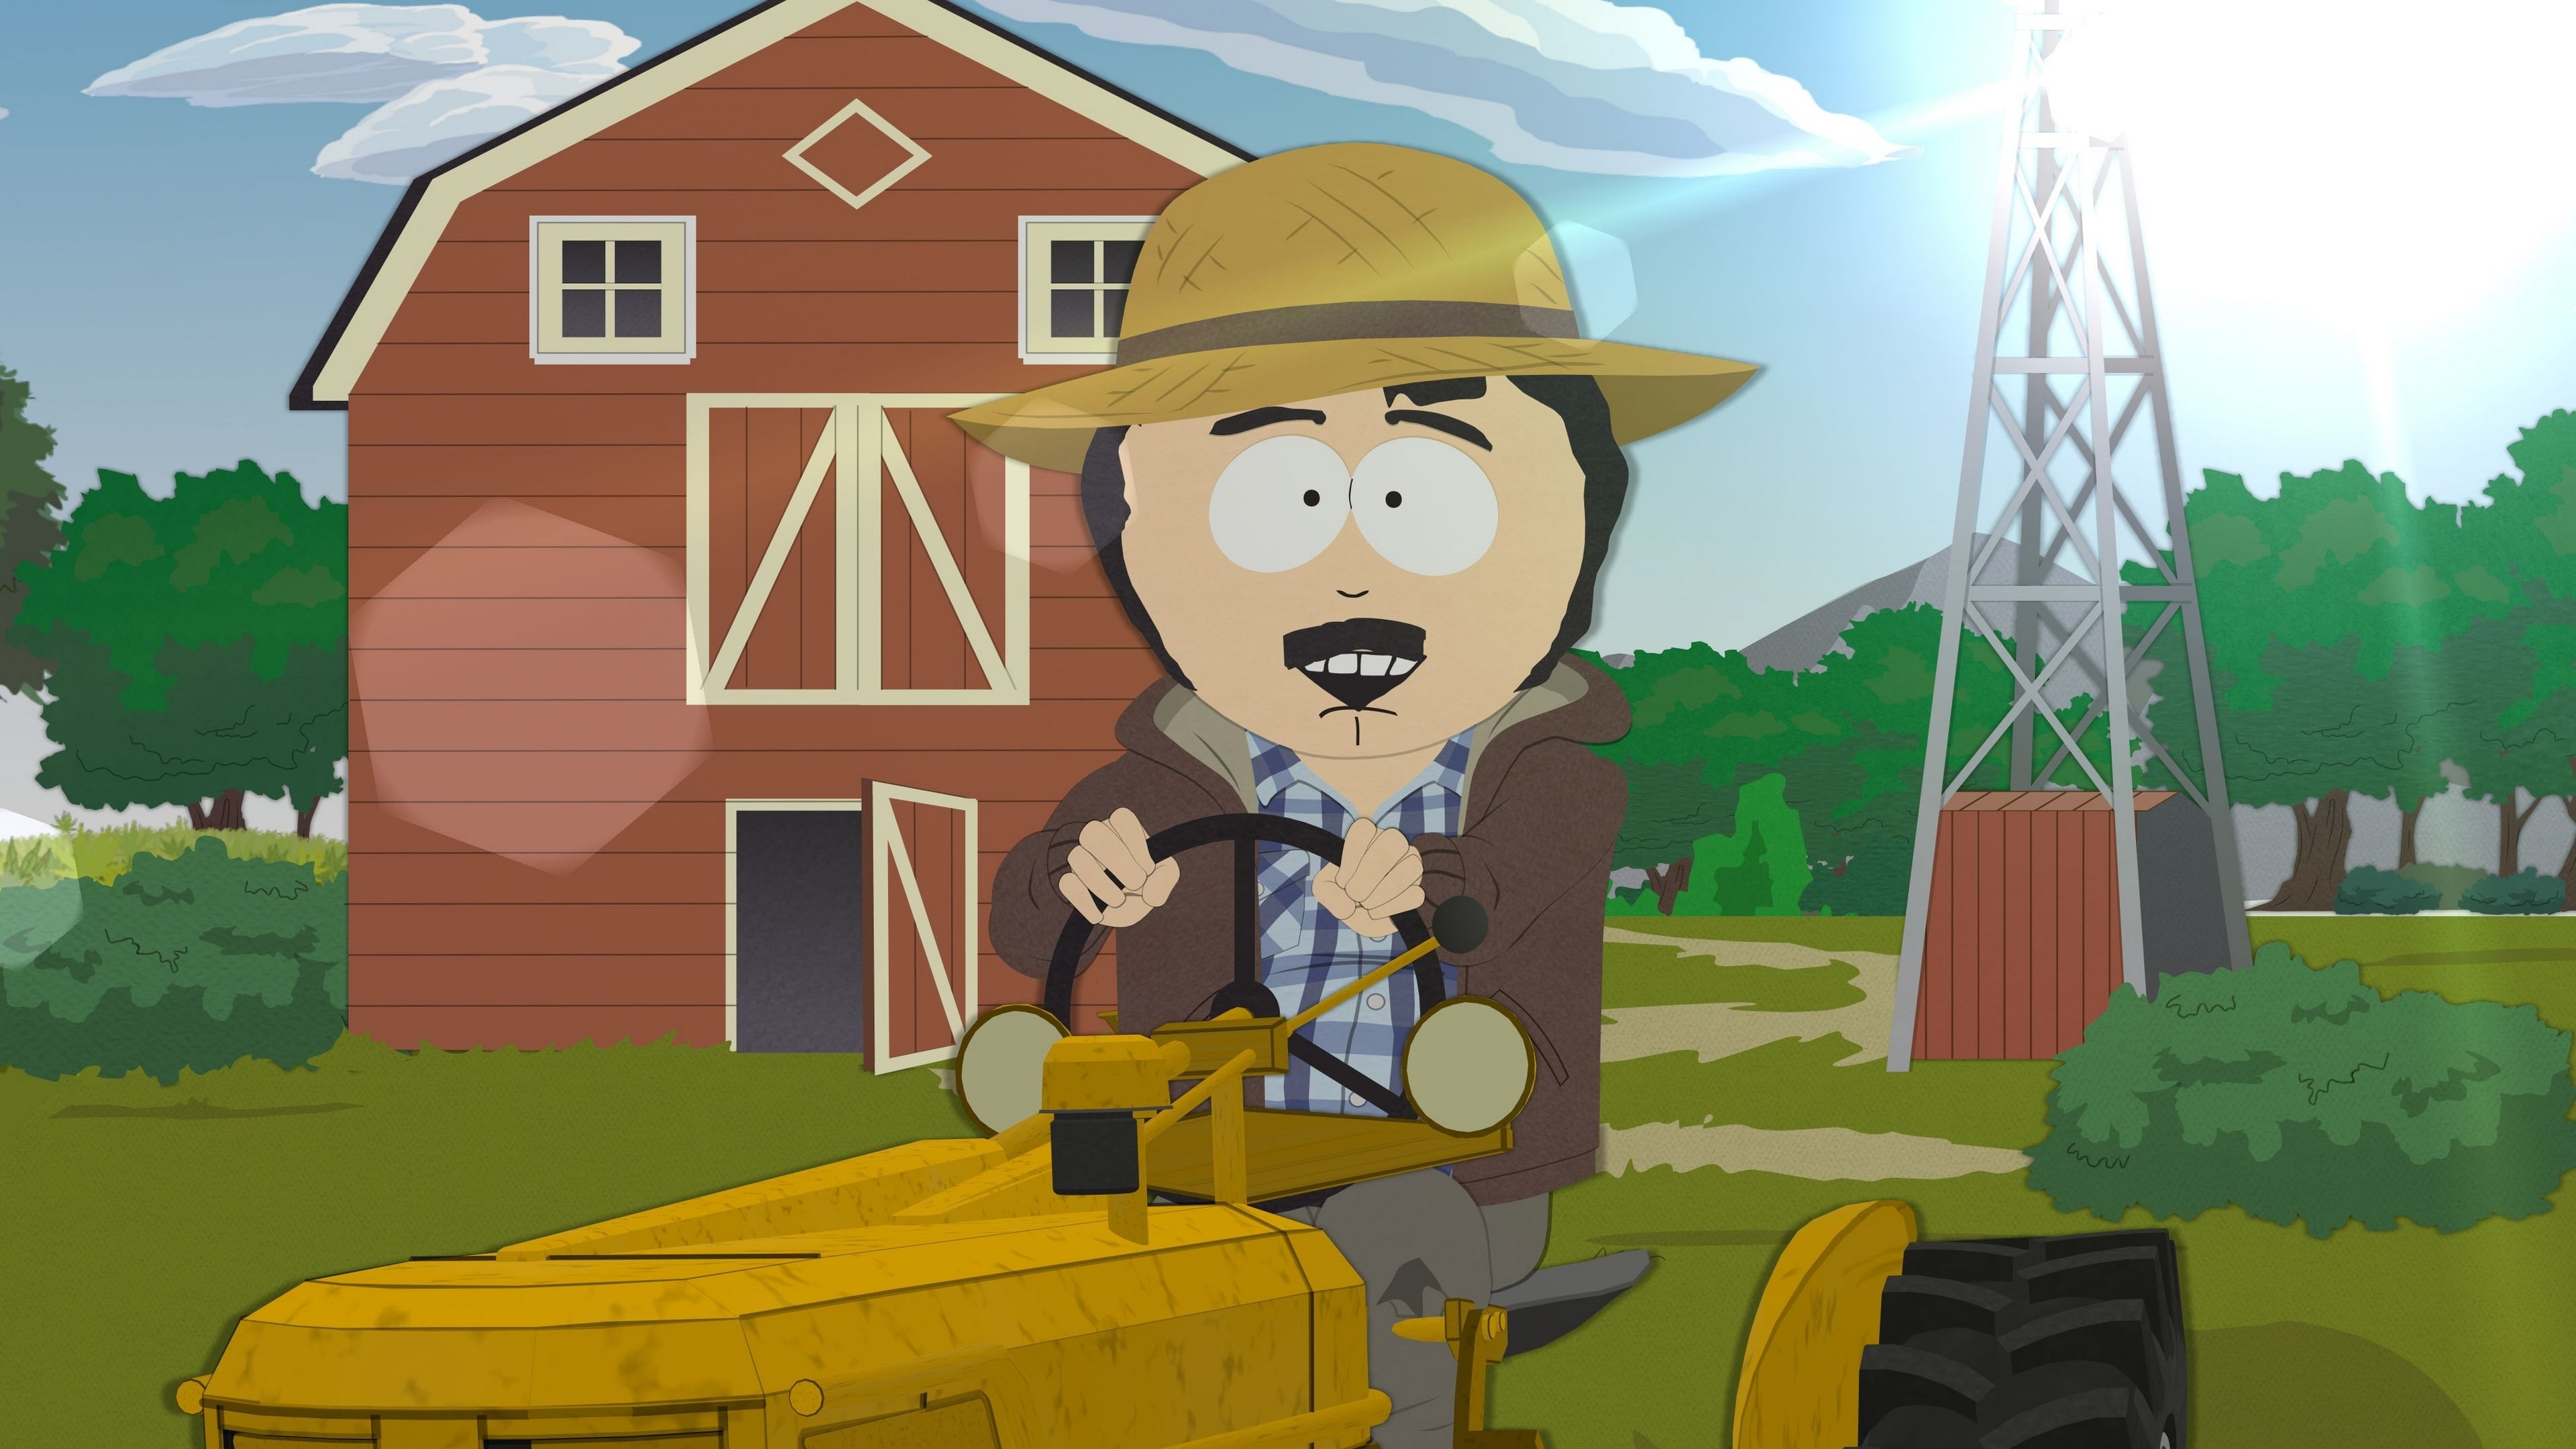 South Park - Season 22 Episode 4 : Tegridy Farms